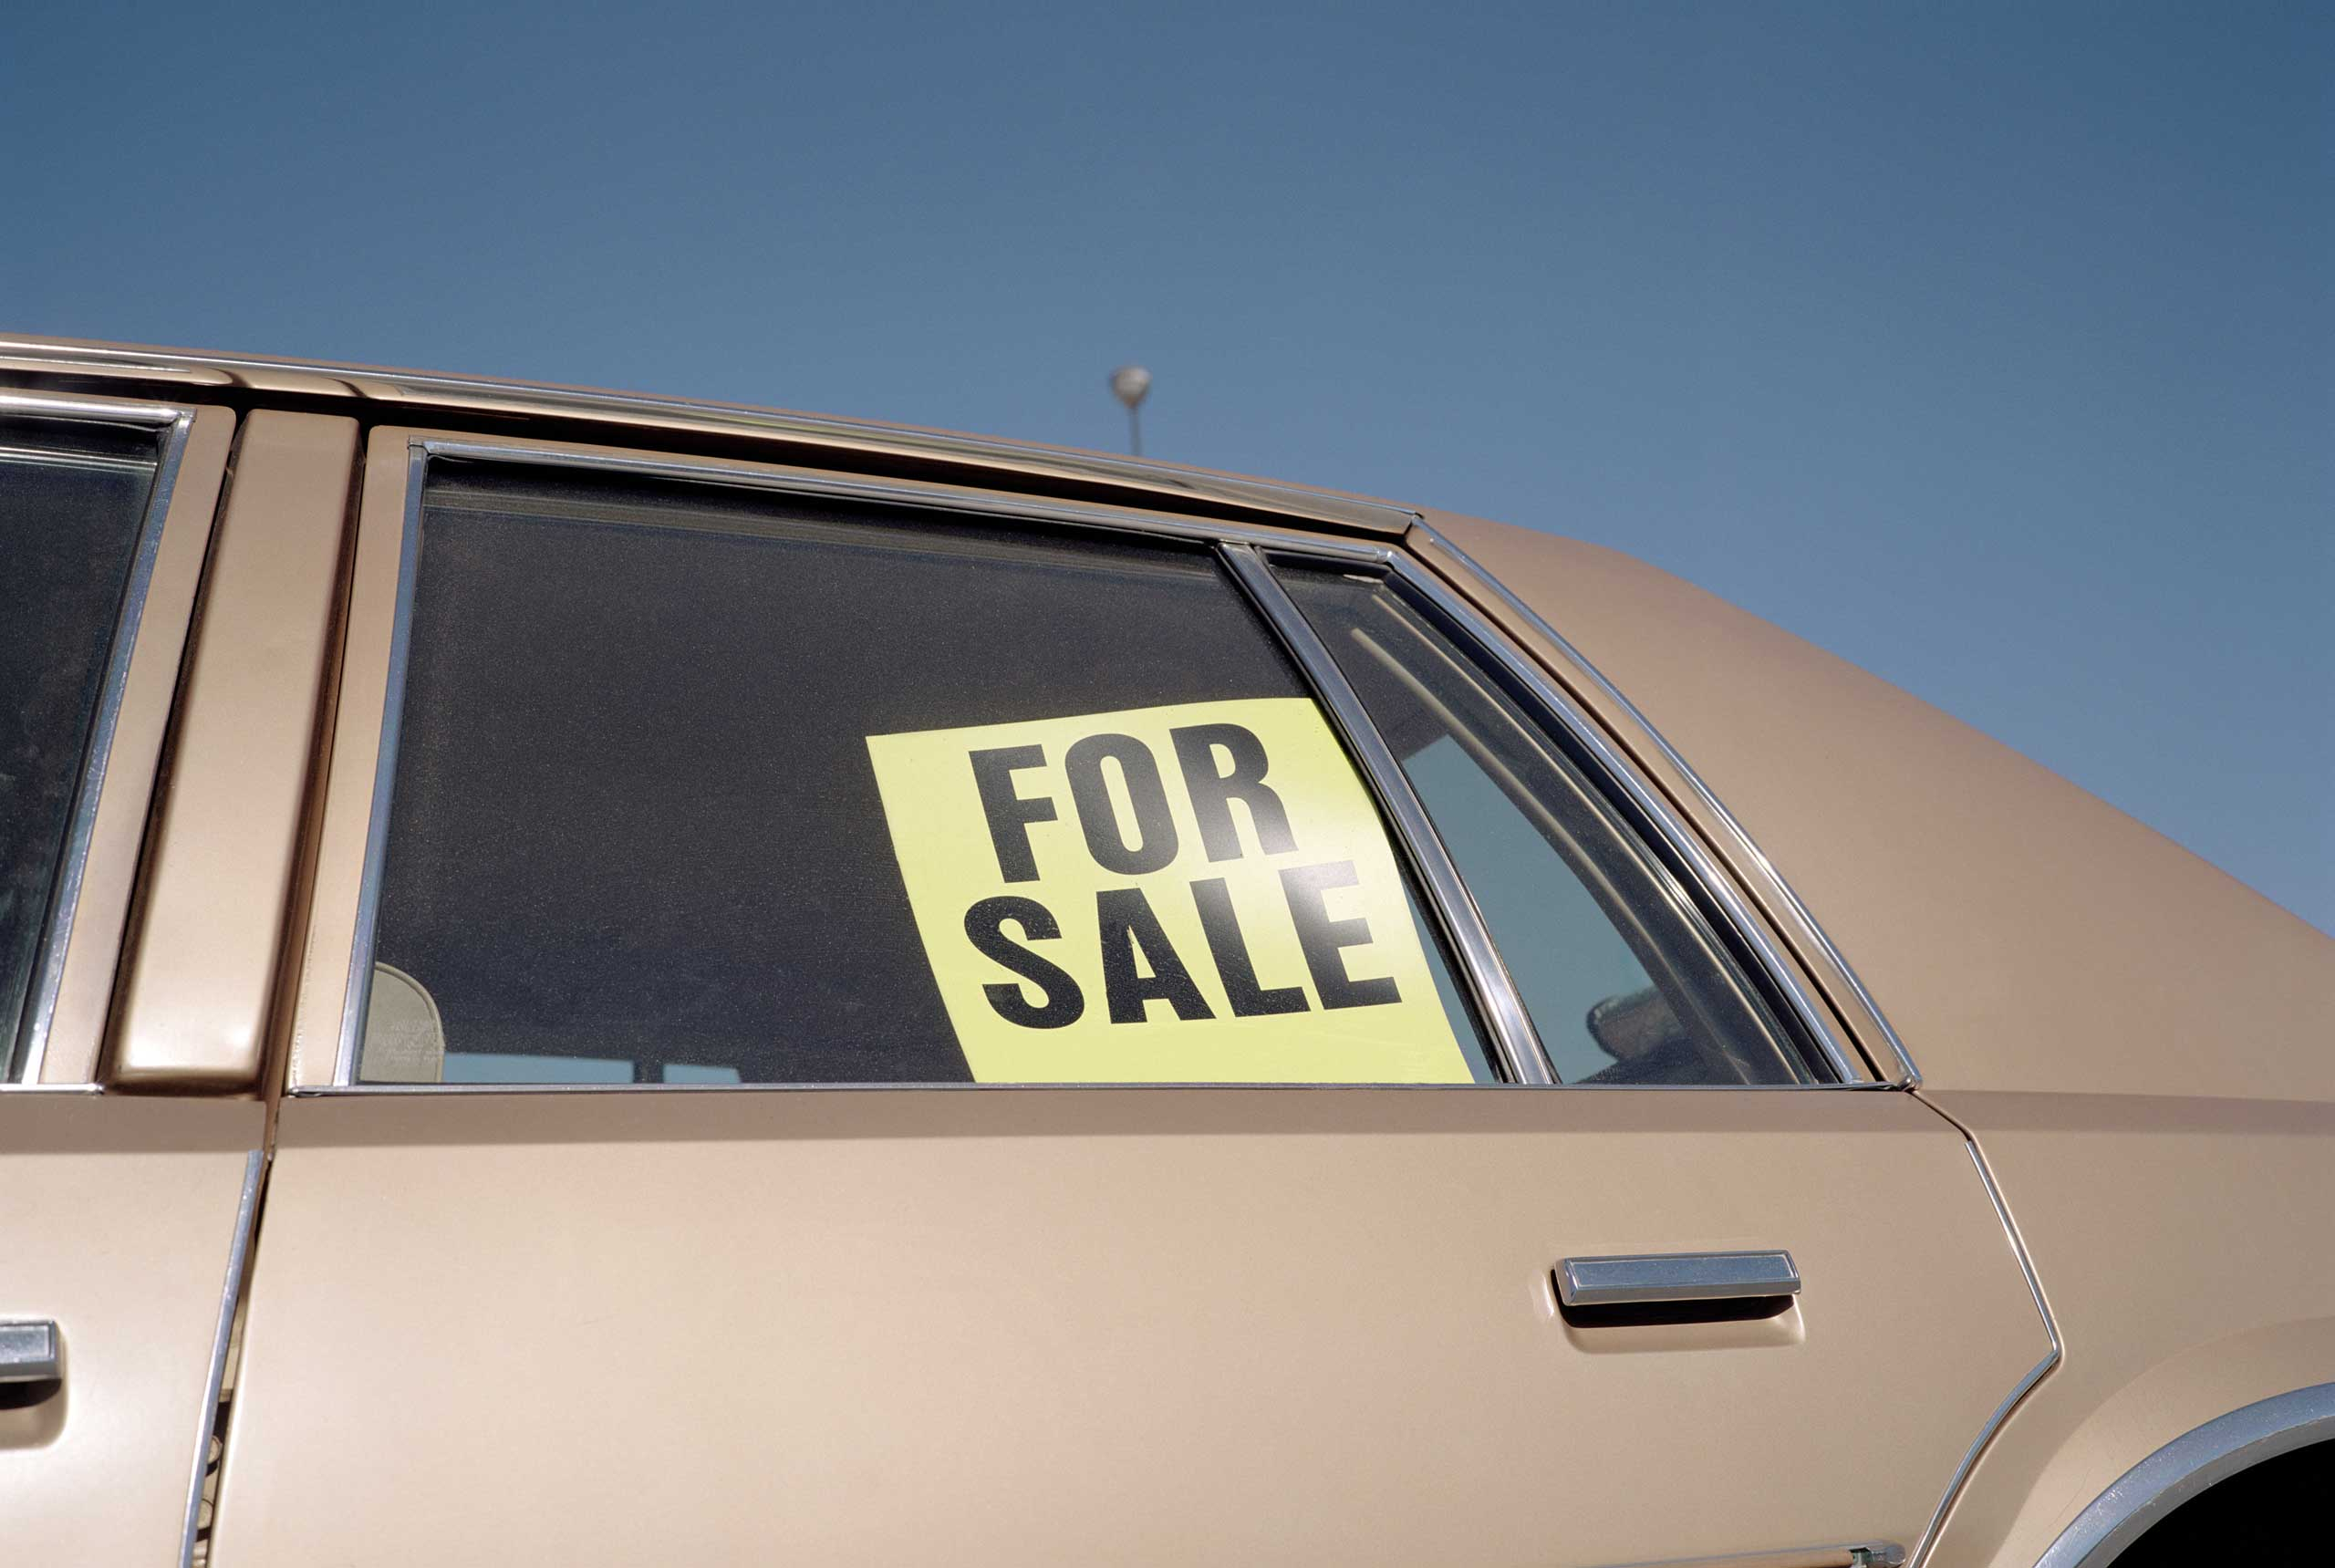 'For Sale' sign placed in car window, outdoors, close-up